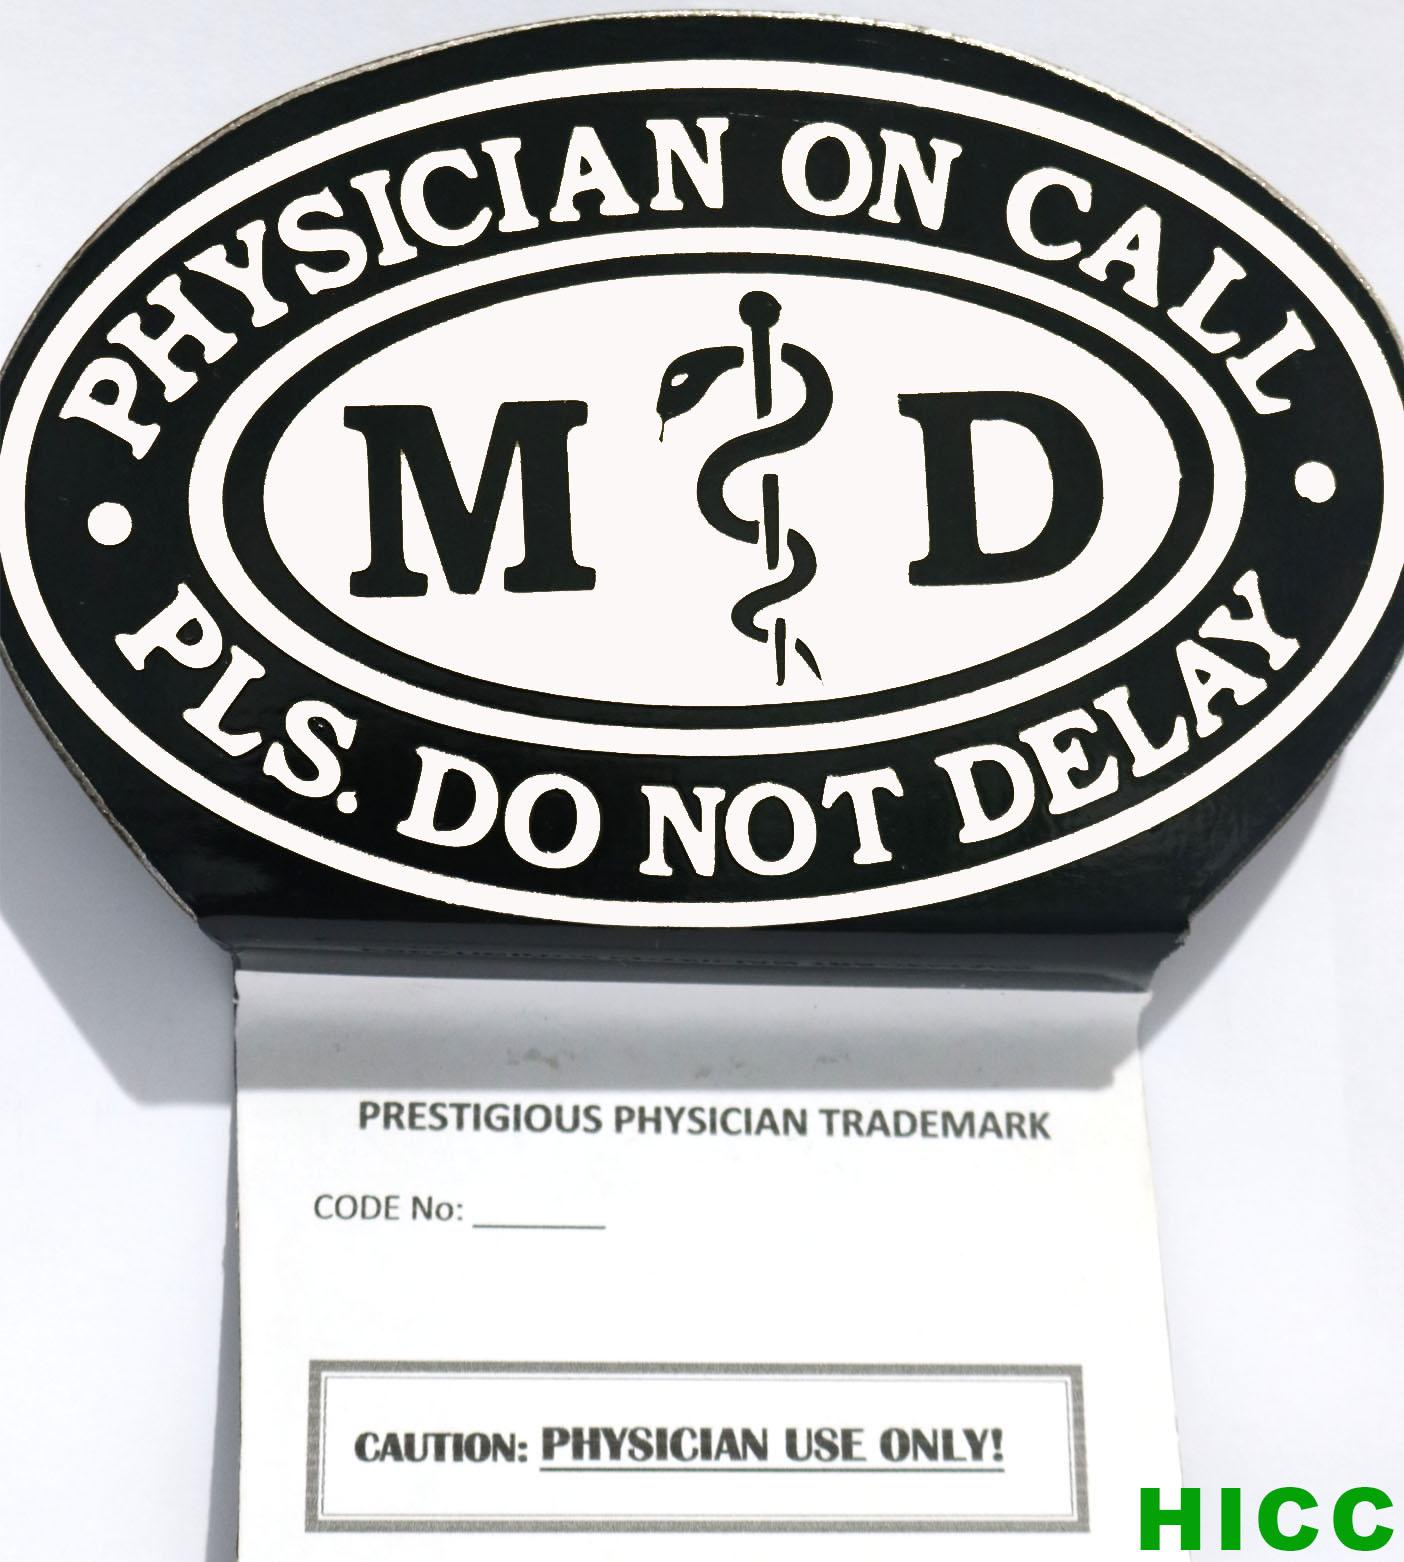 Physician Md Car Emblem (1 Snake) By Holistic Integrative Care Center.